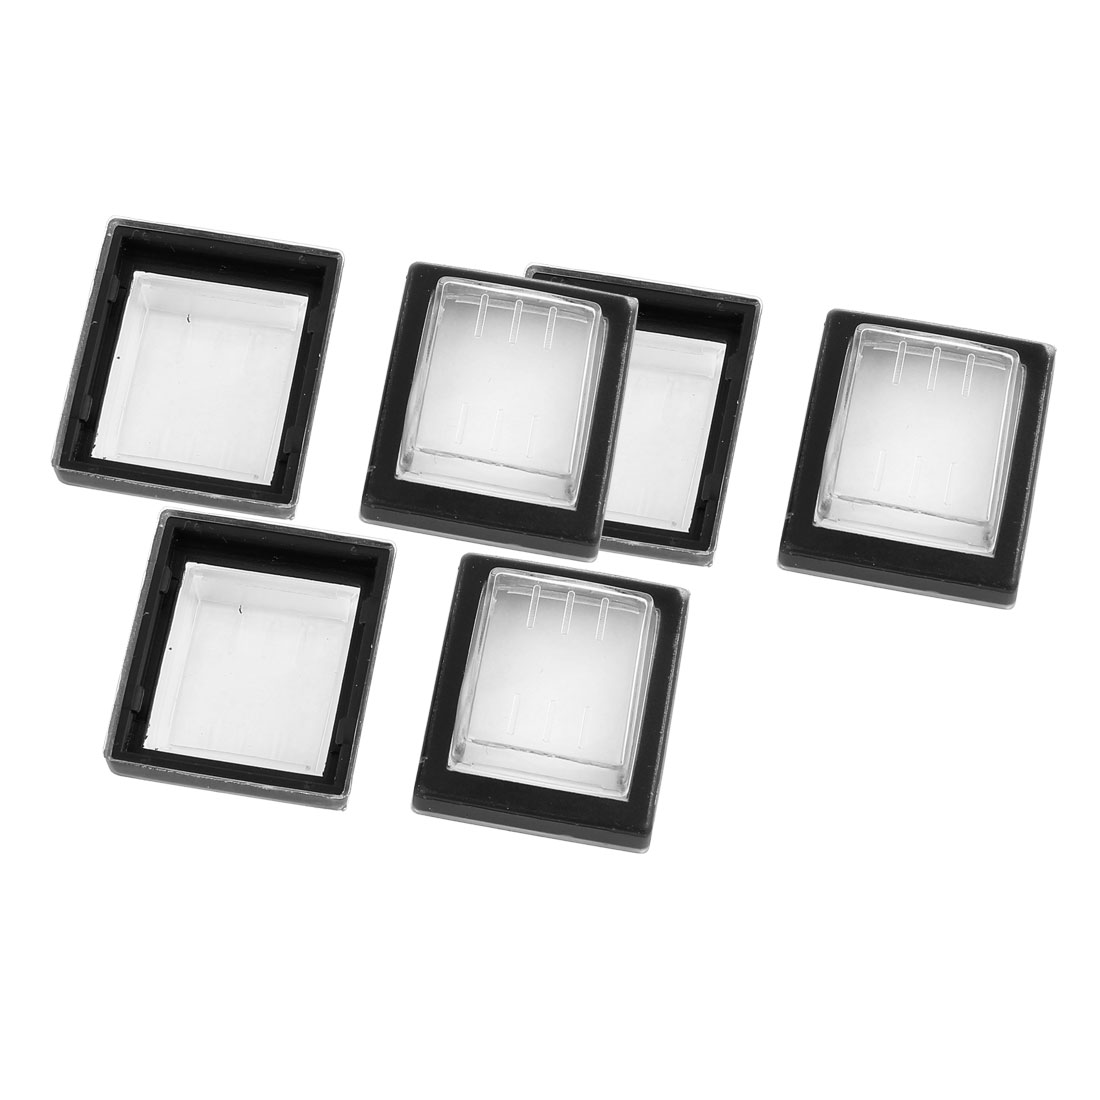 6 Pcs Clear Black Silicone Waterproof Rocker Switch Protect Cover Rectangle Cap